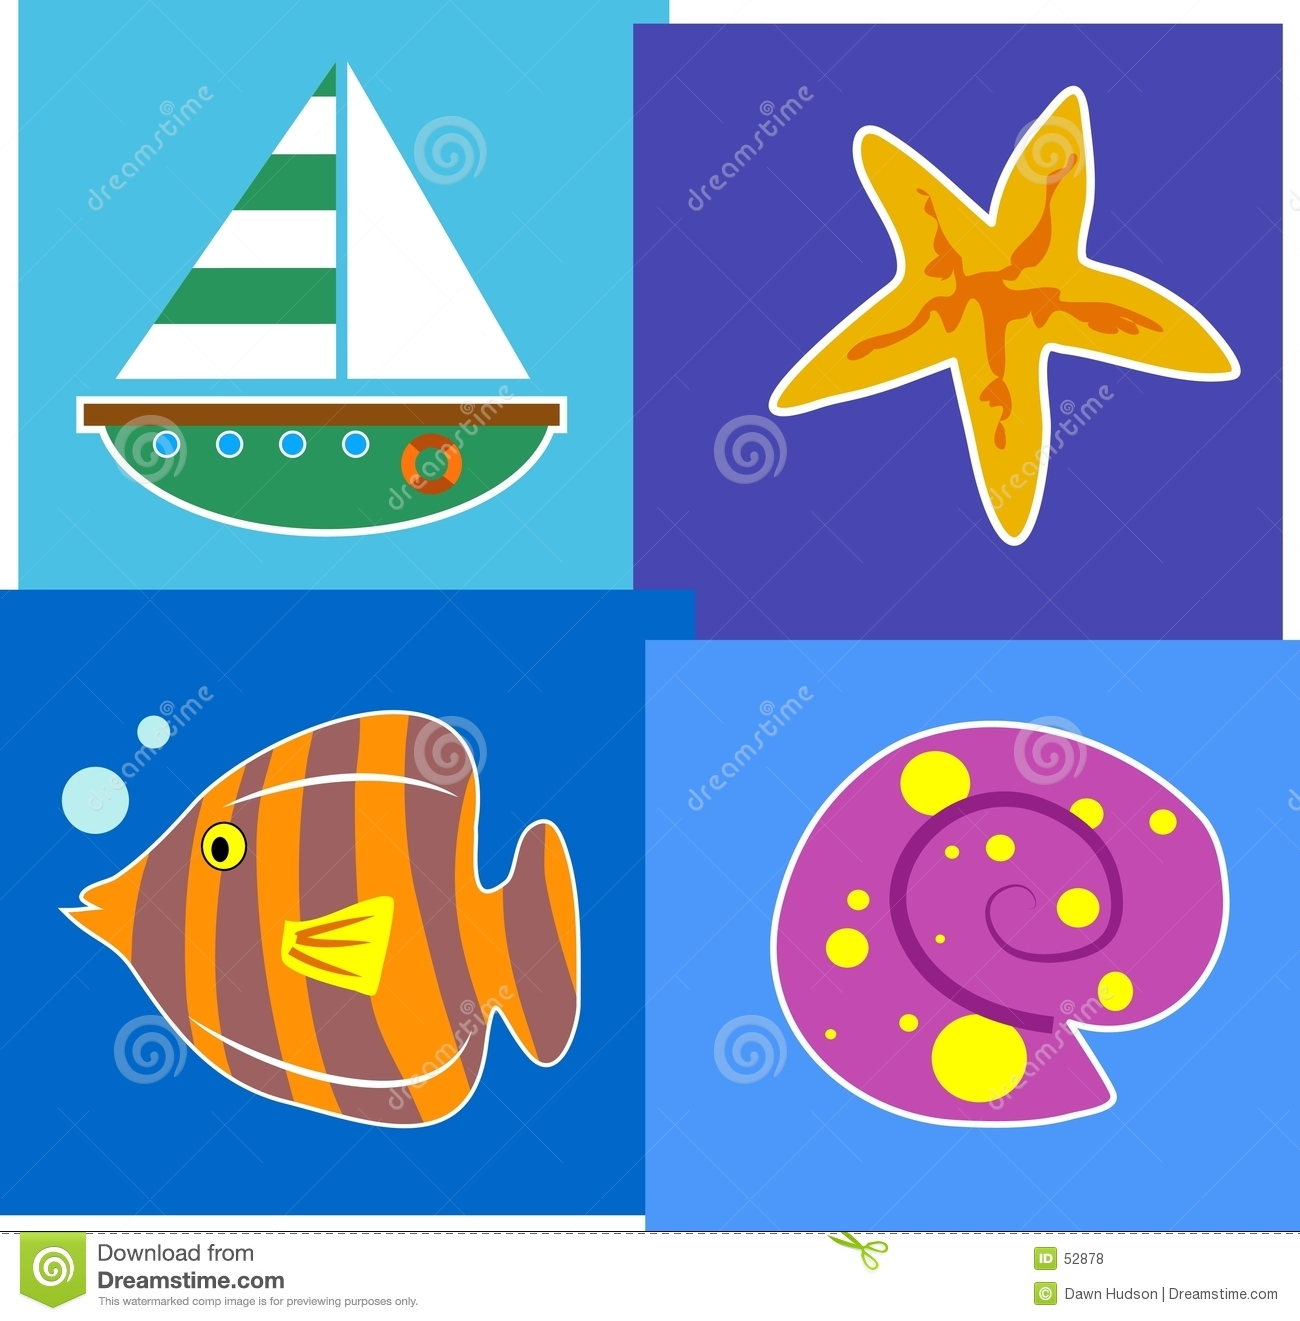 ... the seaside with a sailing boat, a starfish, a fish and a beach shell